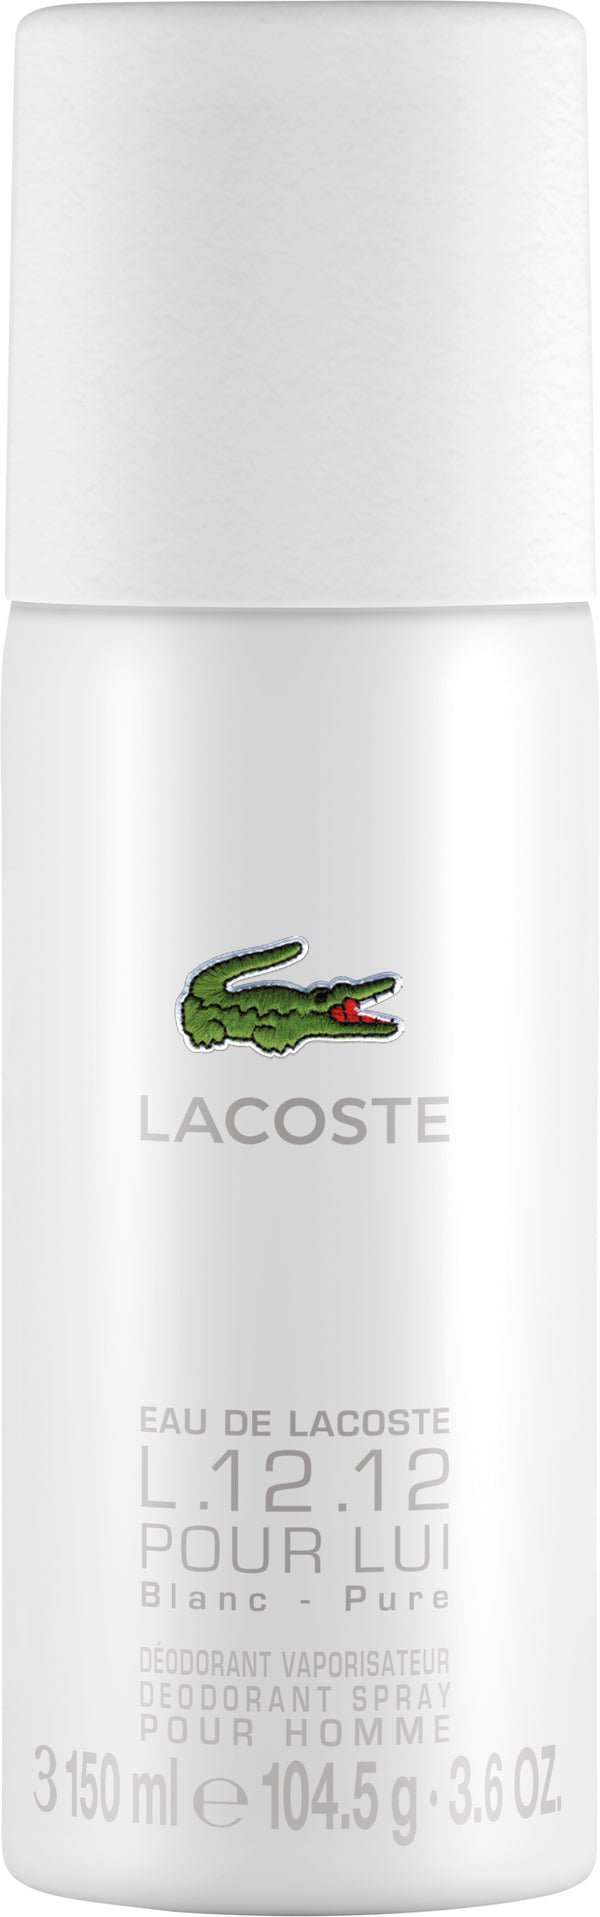 L.12.12 Deodorant Spray 150 ml. - Lacoste